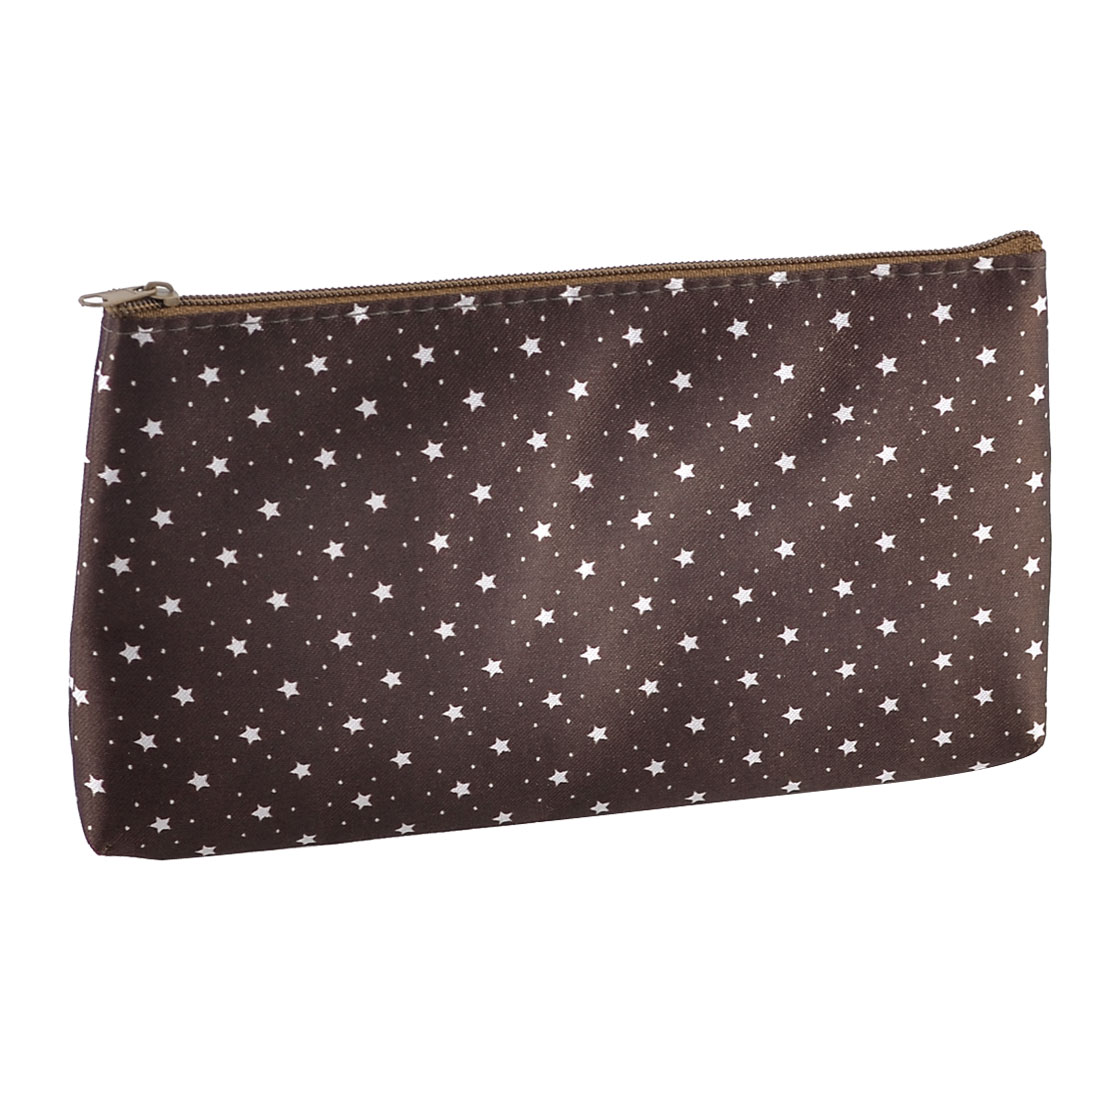 Lady Zipper Stars Pattern Brush Cosmetic Pouch Holder Bag Brown White